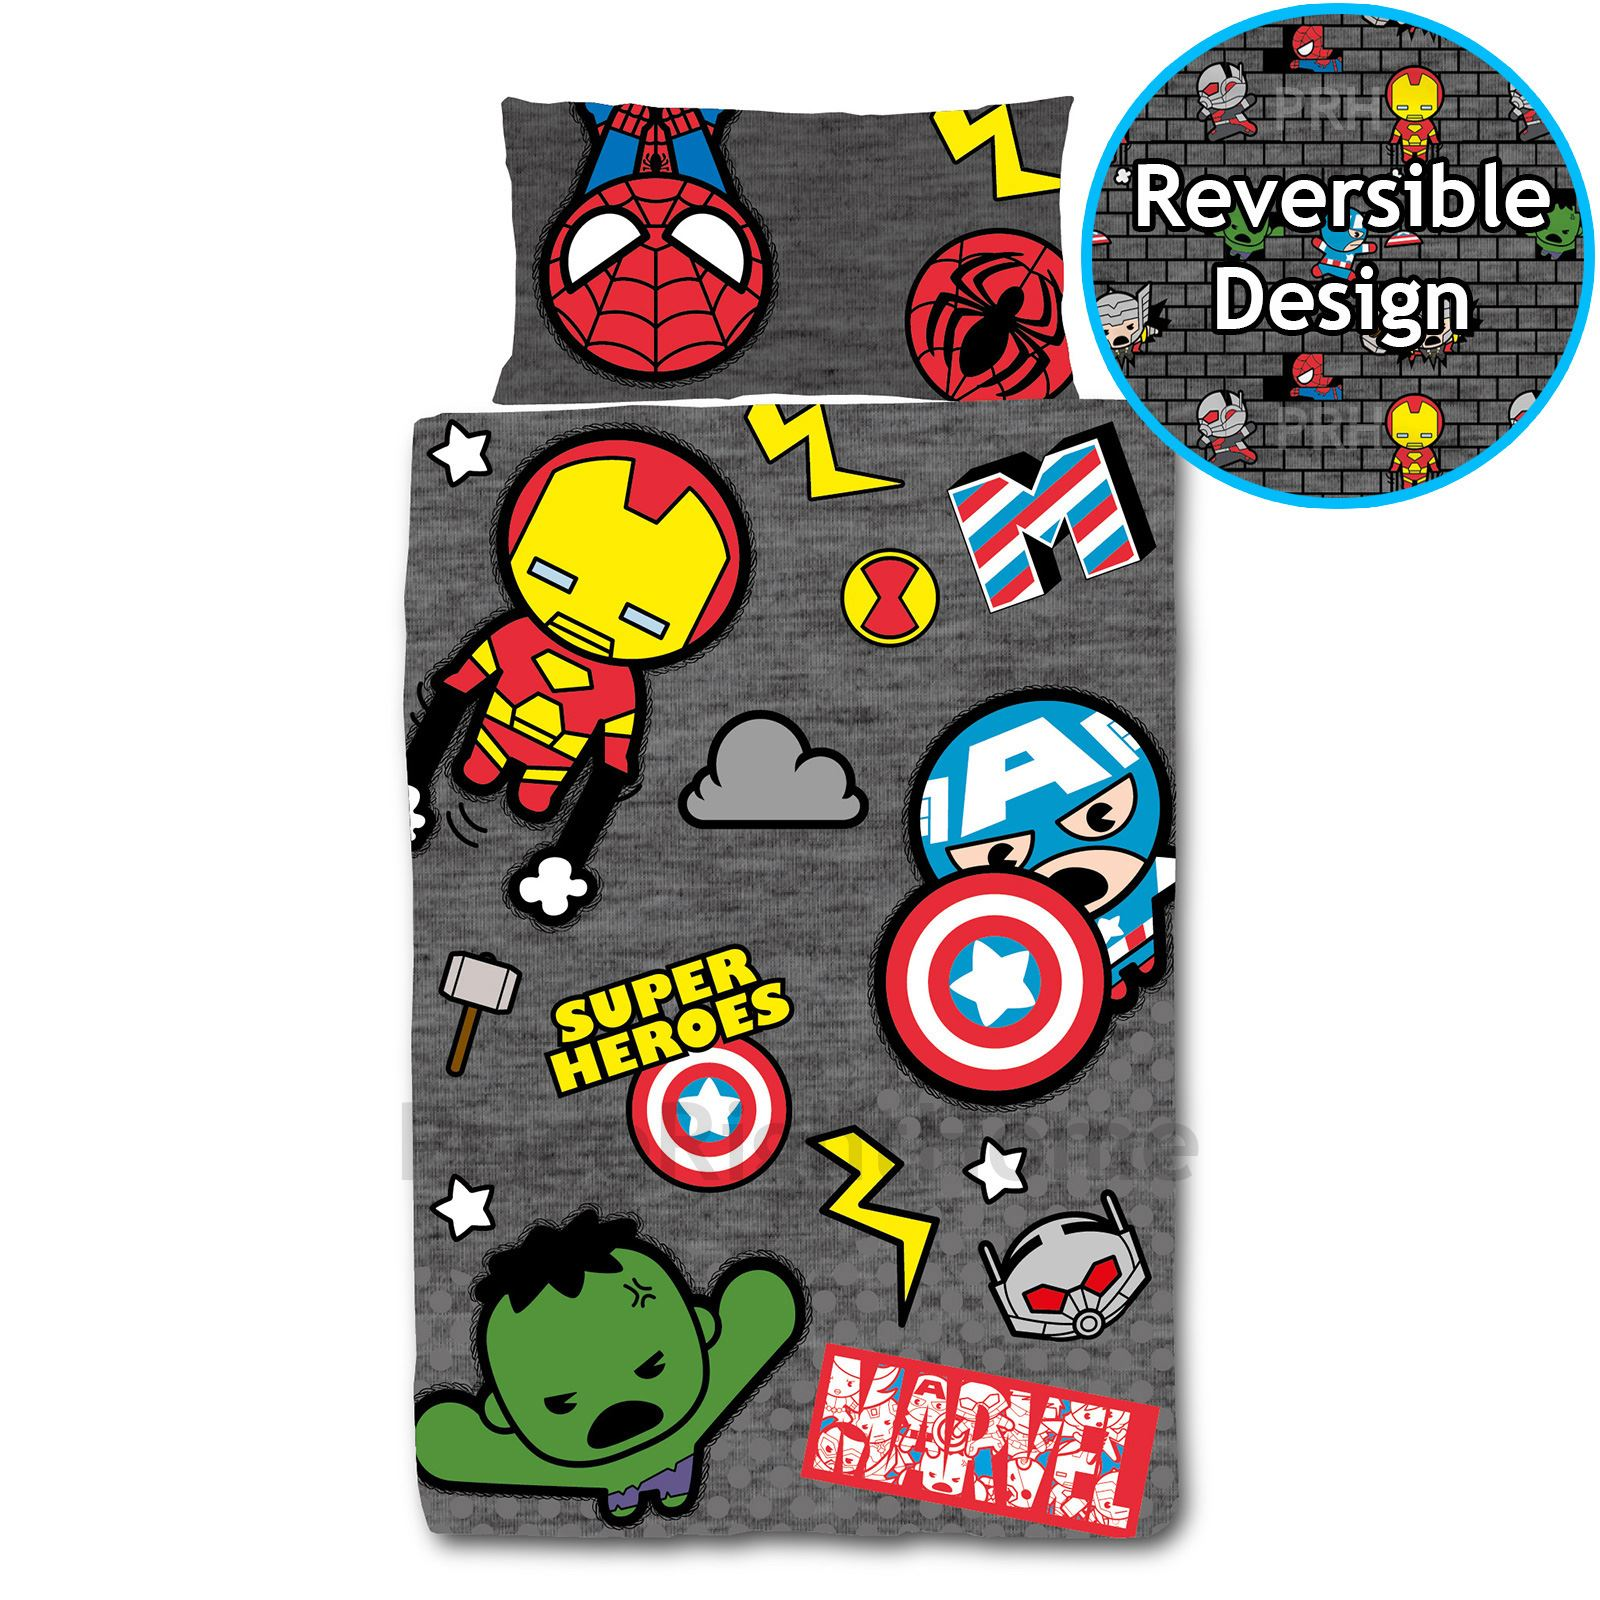 OFFICIAL-AVENGERS-MARVEL-COMICS-BEDDING-BEDROOM-ACCESSORIES-DUVETS-CURTAINS